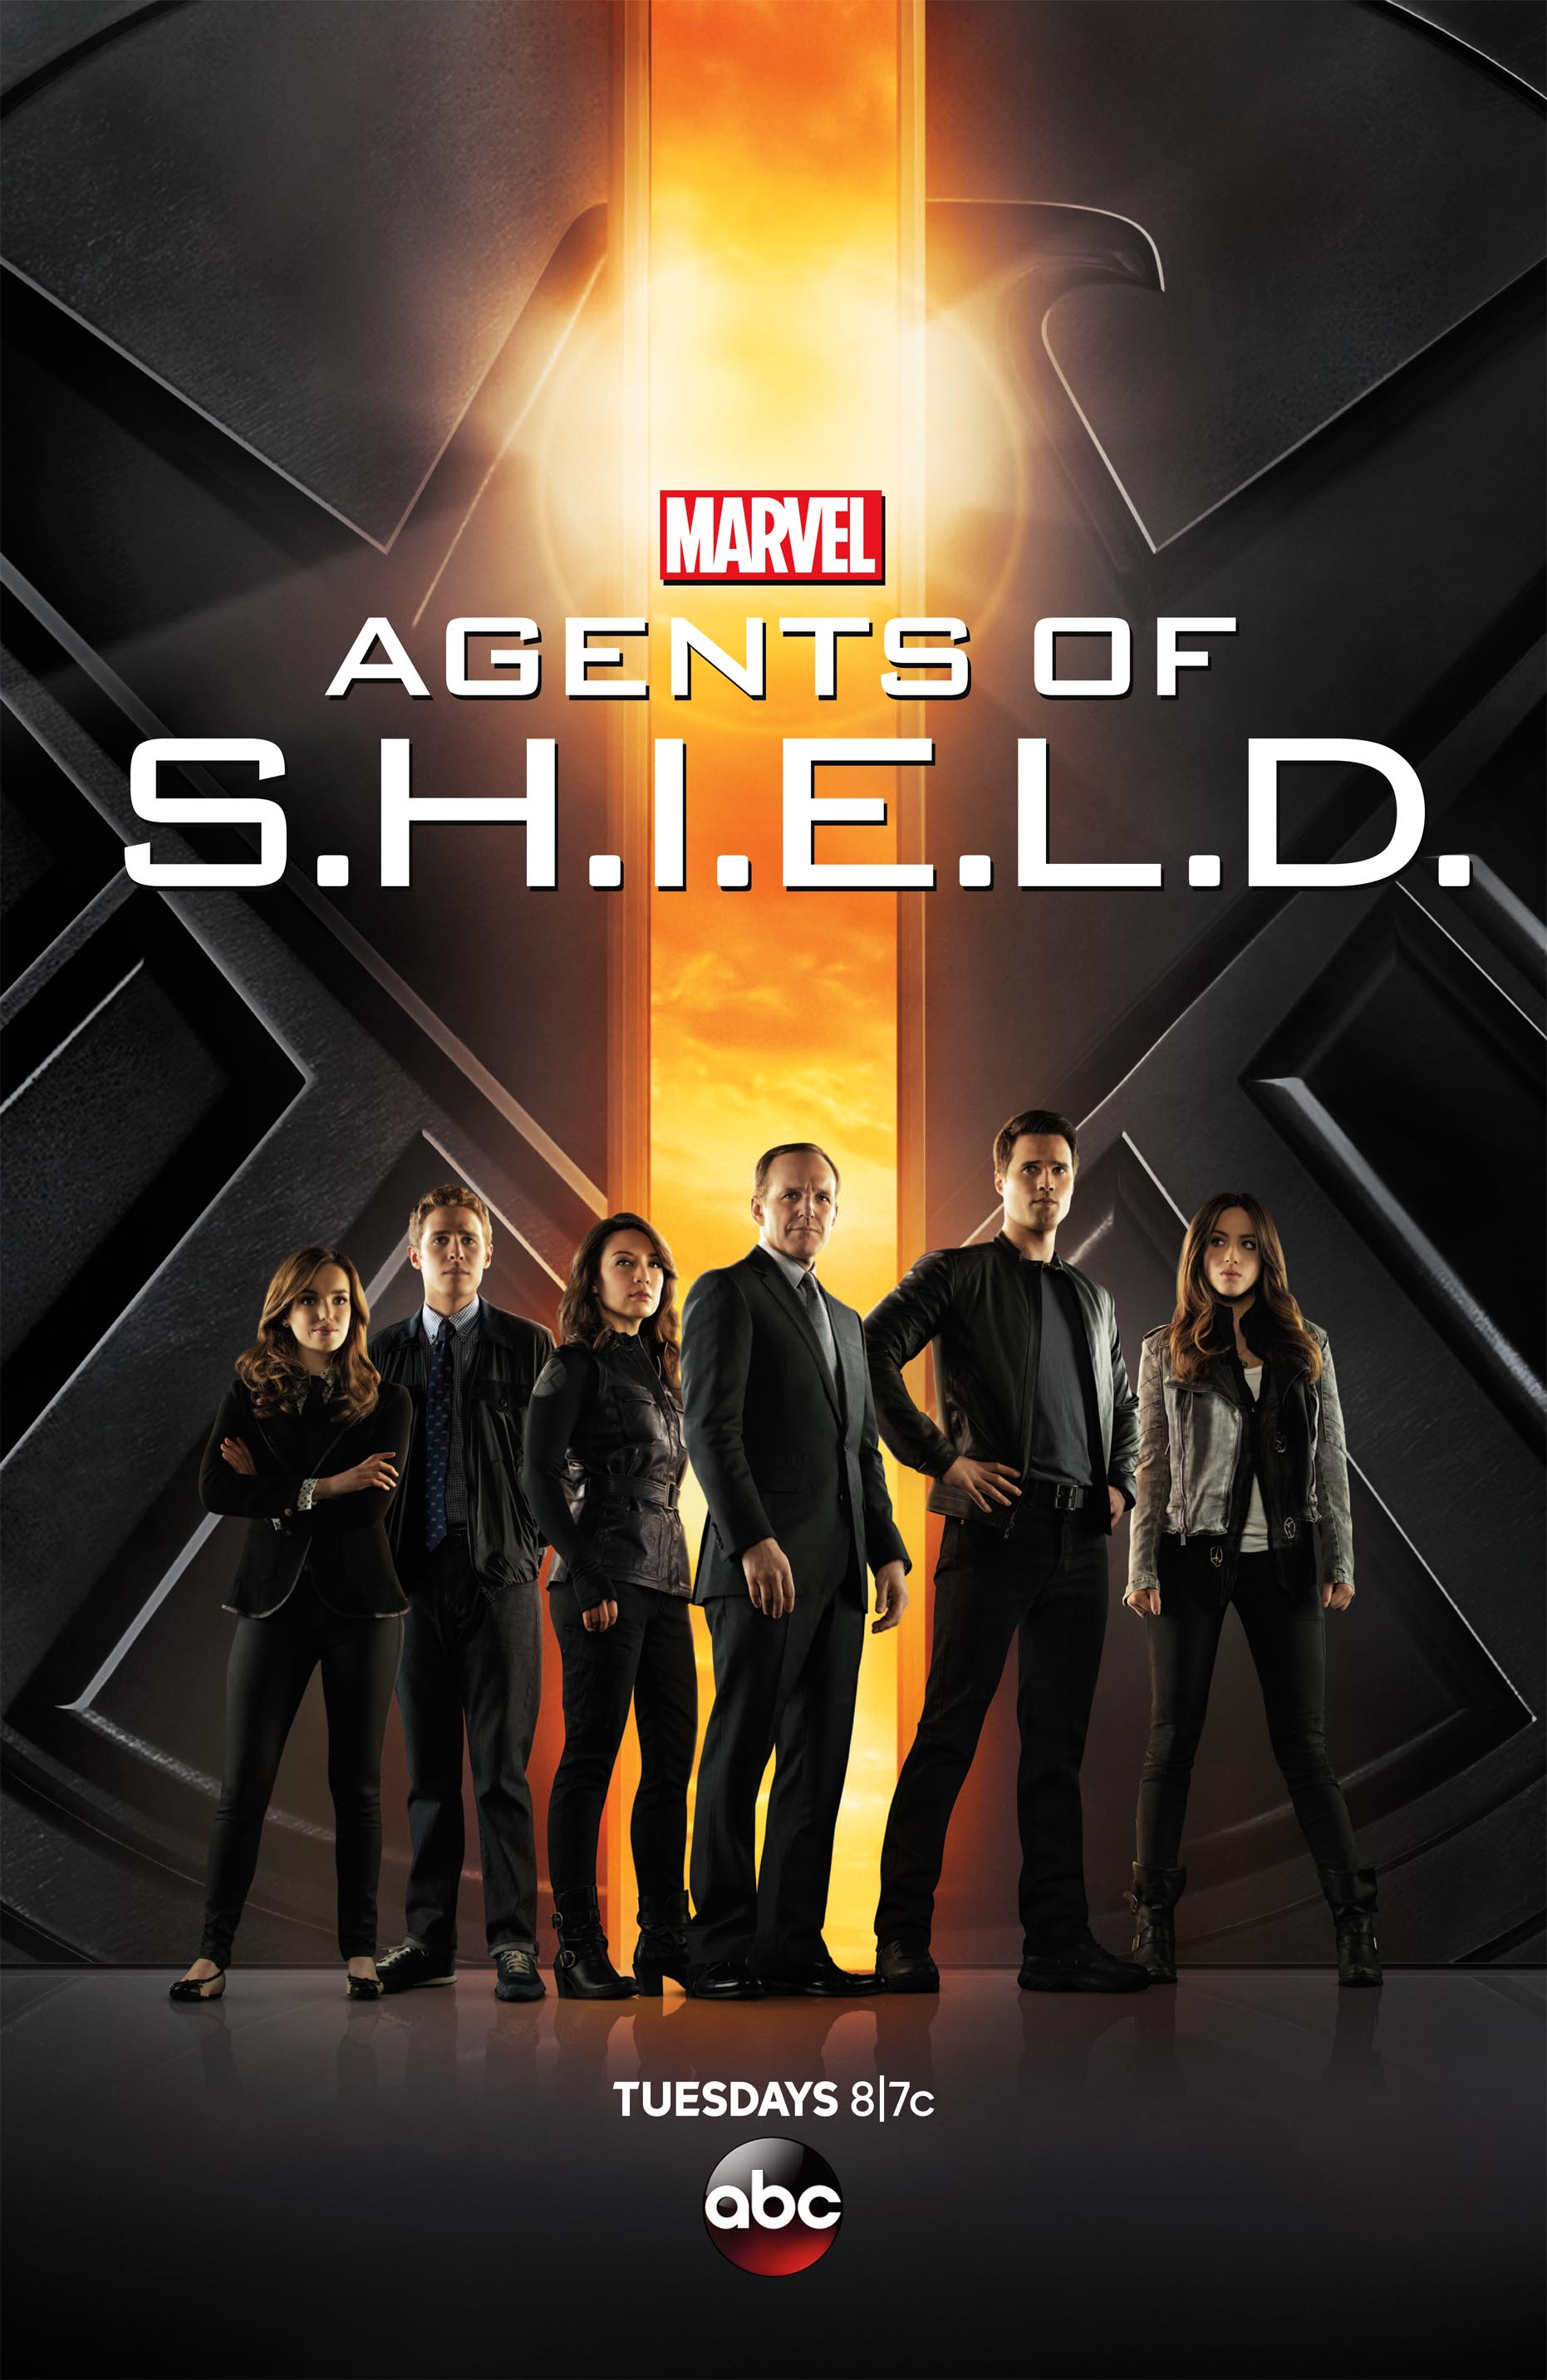 Agents_of_S.H.I.E.L.D._Season_1_Poster.jpg